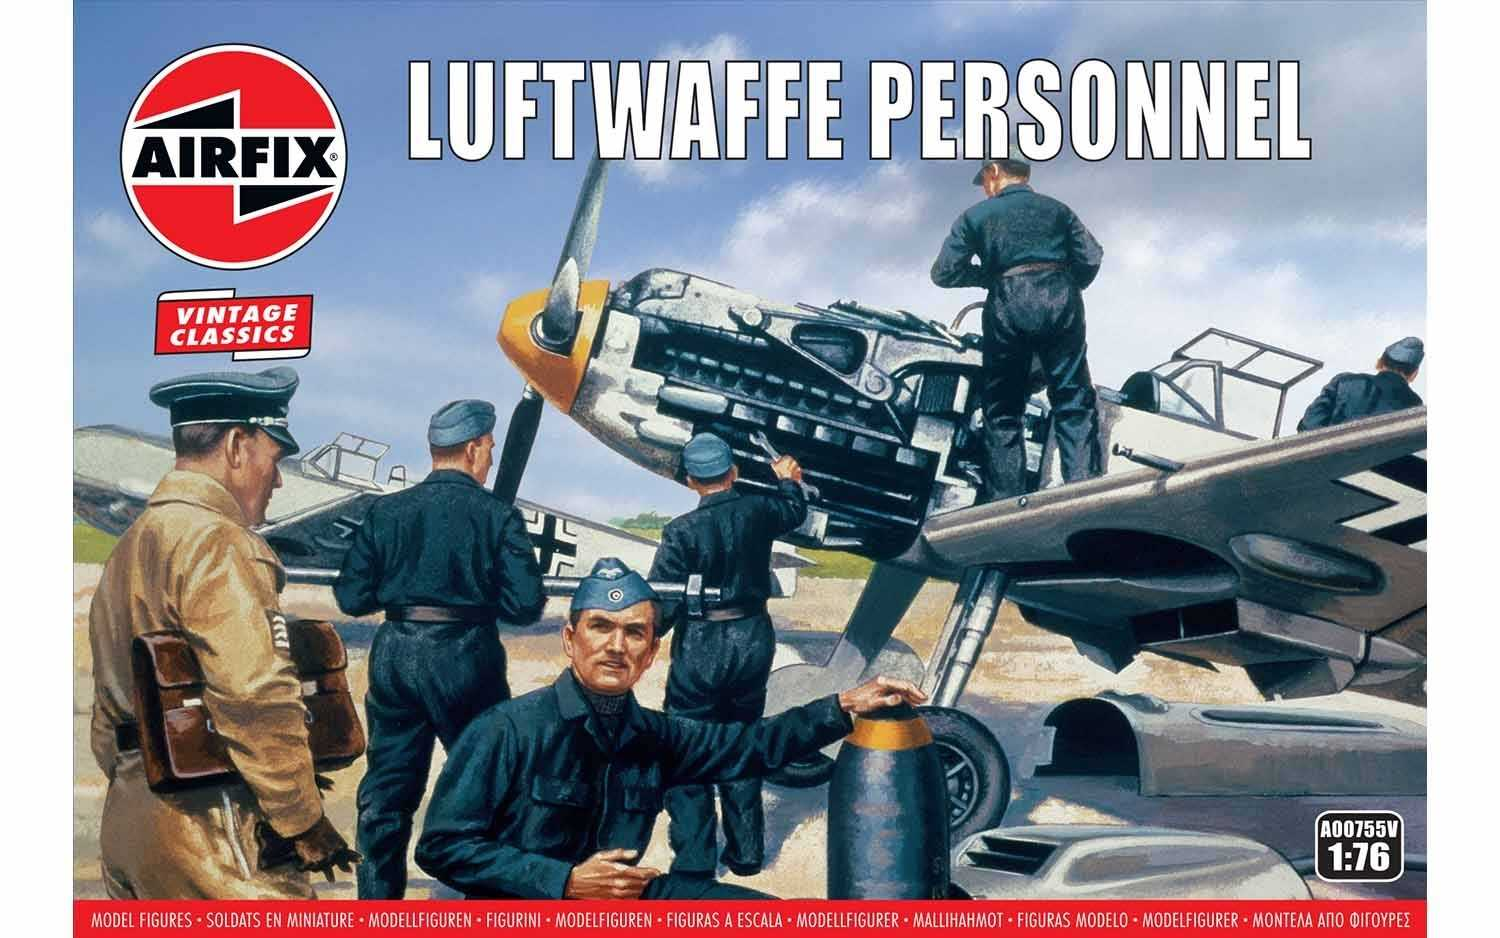 1:76 Luftwaffe Personnel (Classic Kit VINTAGE Military)